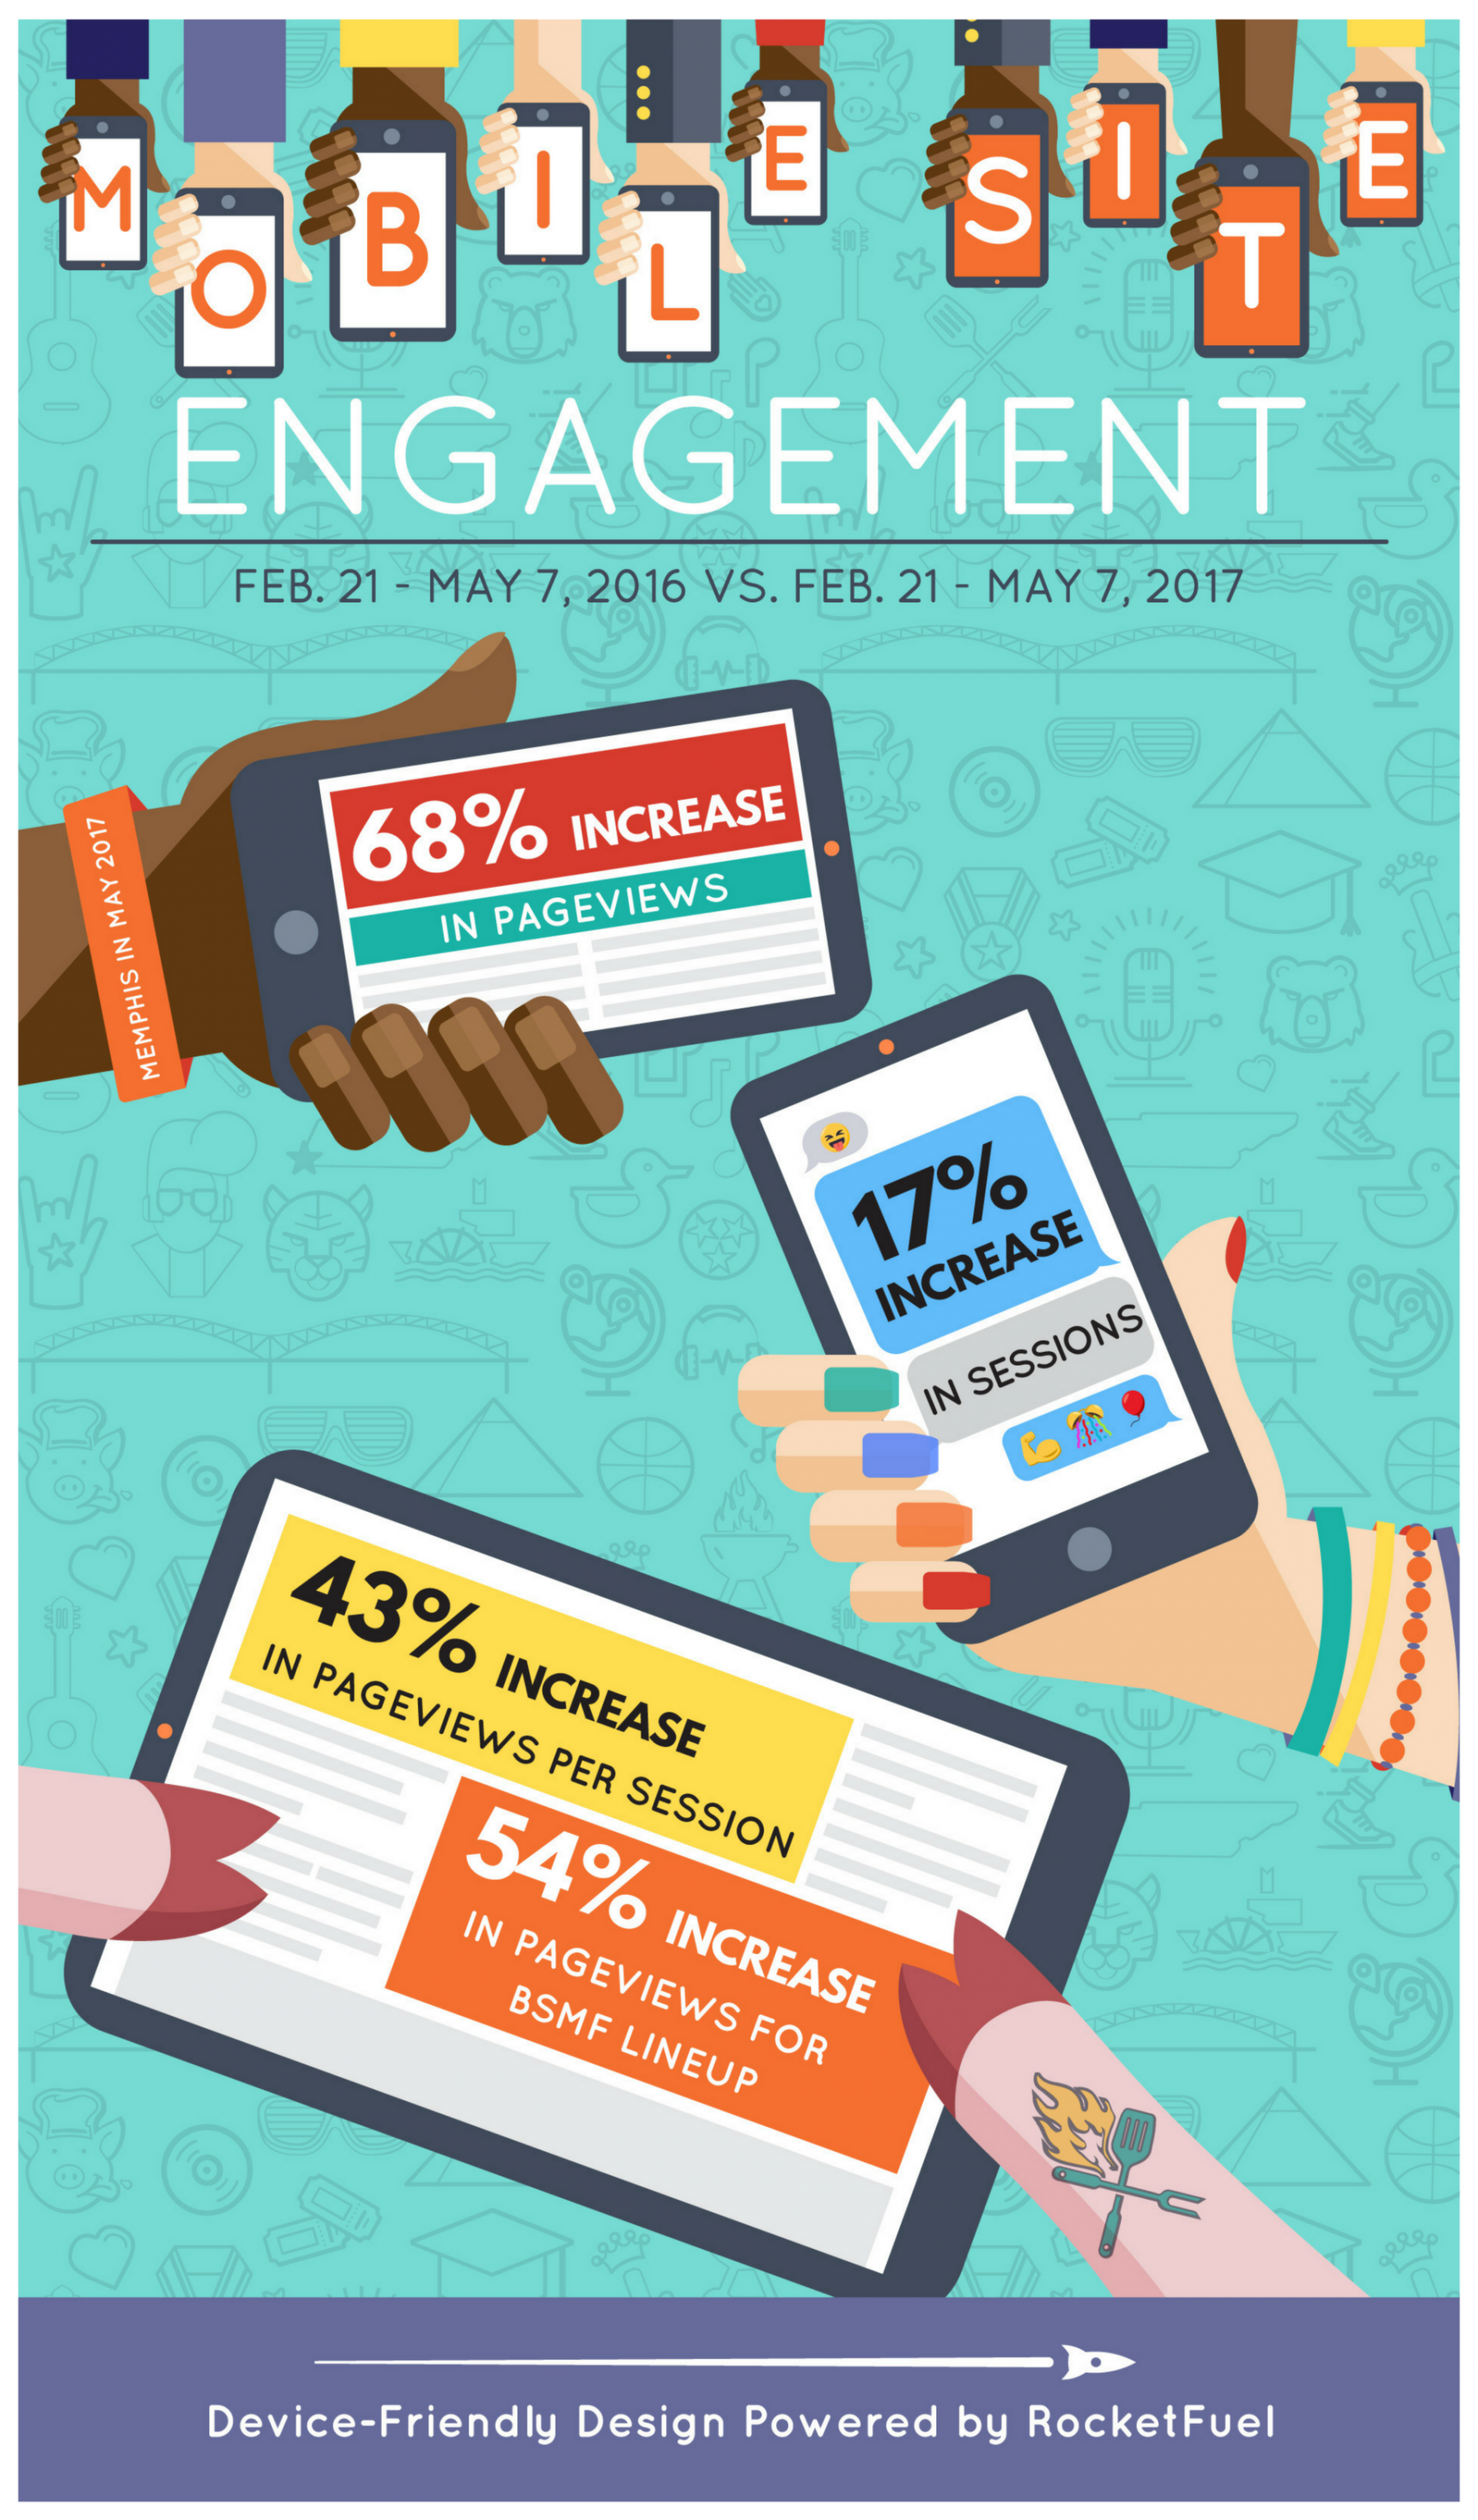 Our Results - Site Traffic/Engagement Infographic 1.5